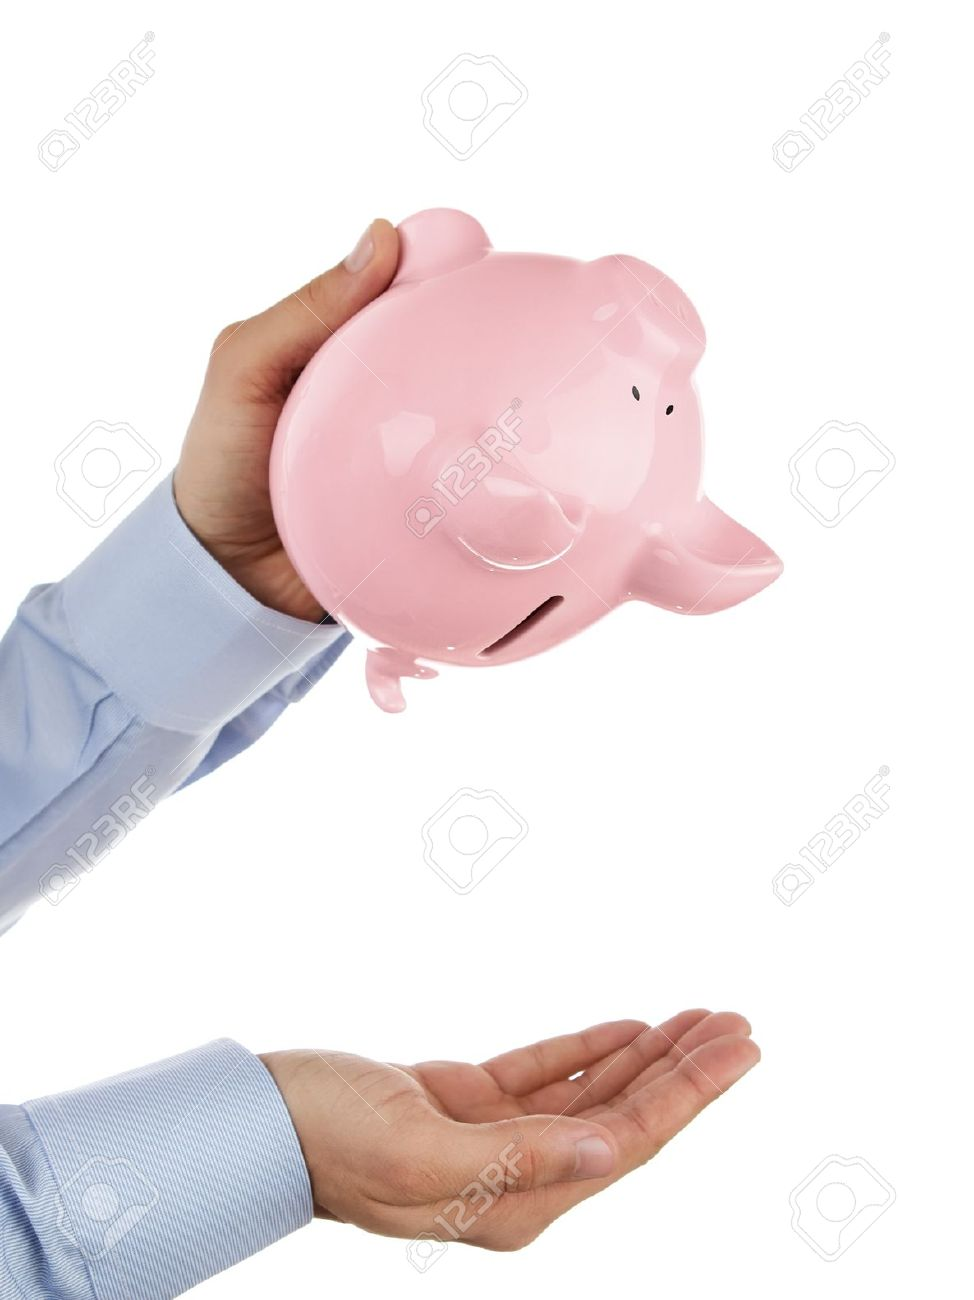 Girl with empty piggy bank clipart graphic freeuse download Piggy Bank Pig Stock Photos & Pictures. Royalty Free Piggy Bank ... graphic freeuse download